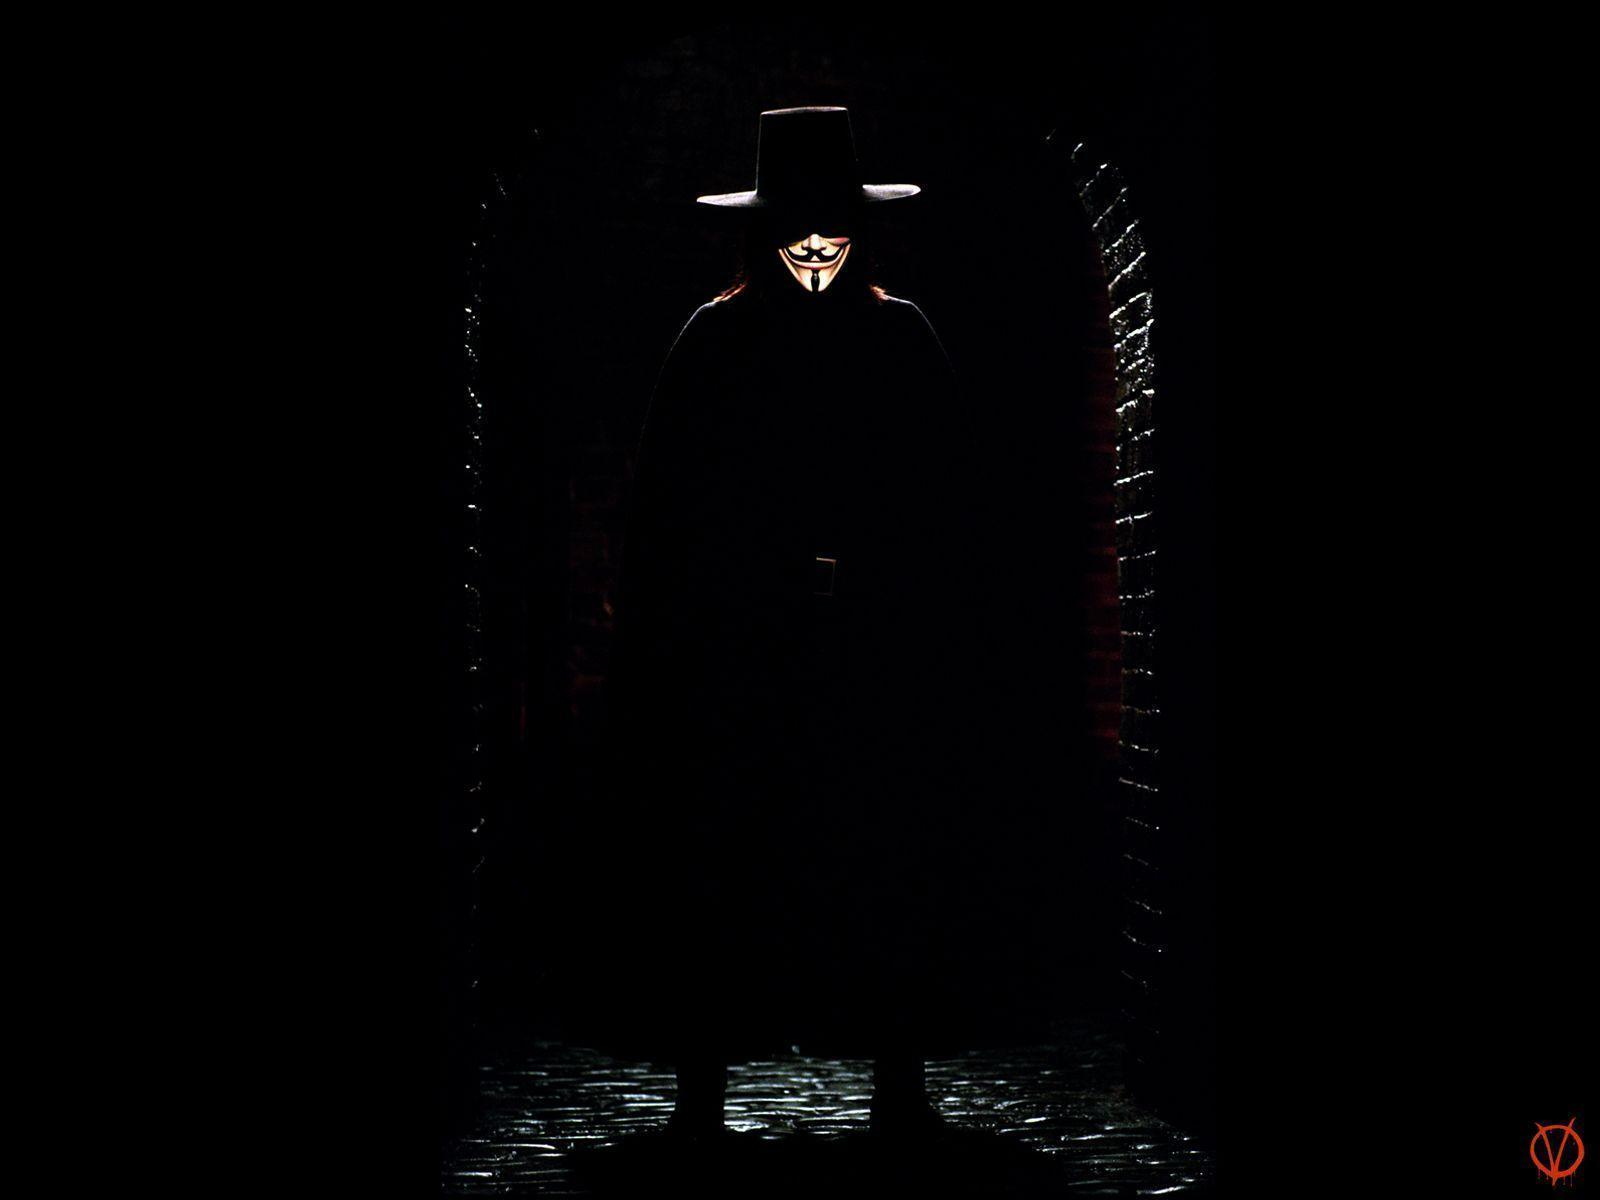 V for Vendetta Wallpapers | HD Wallpapers Base